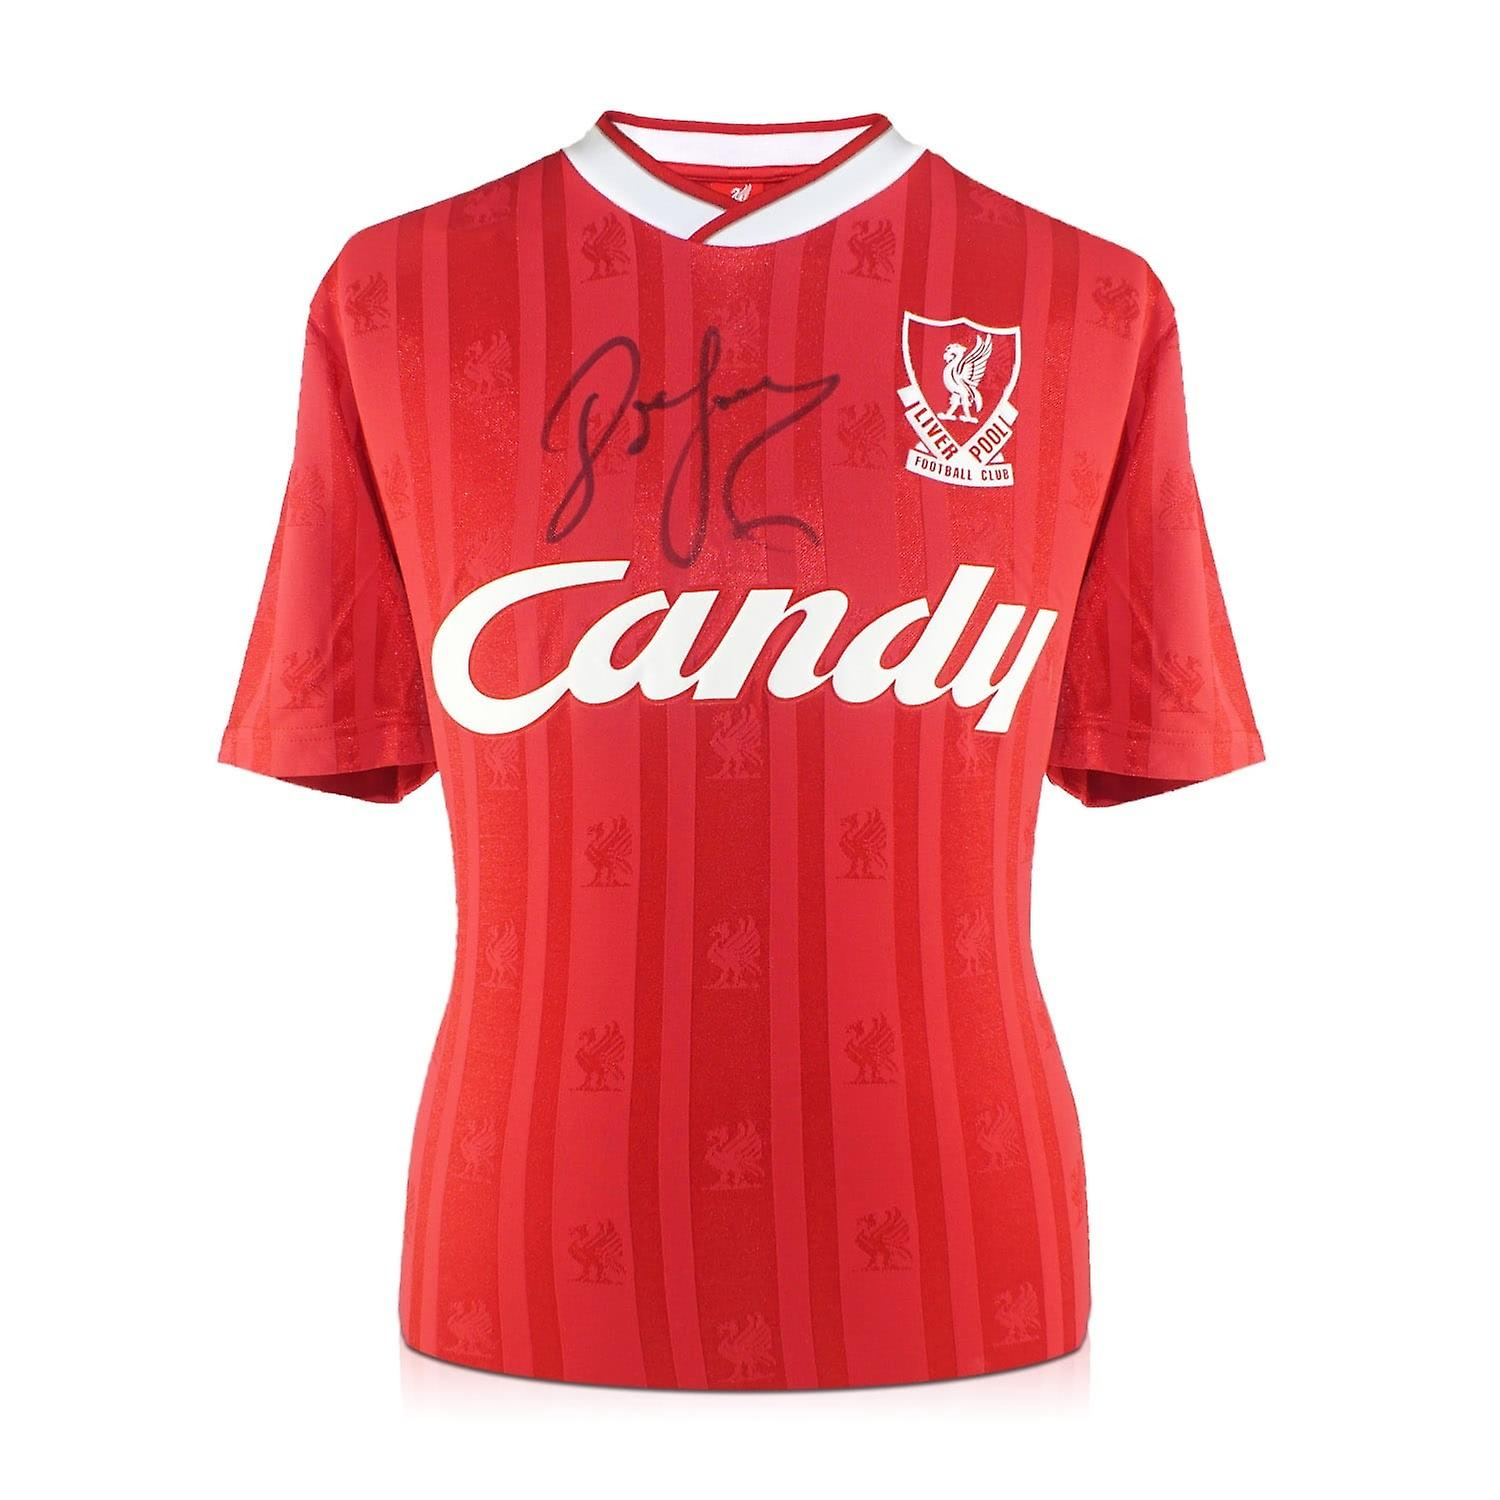 John Barnes Signed 1988-89 Liverpool Home Shirt